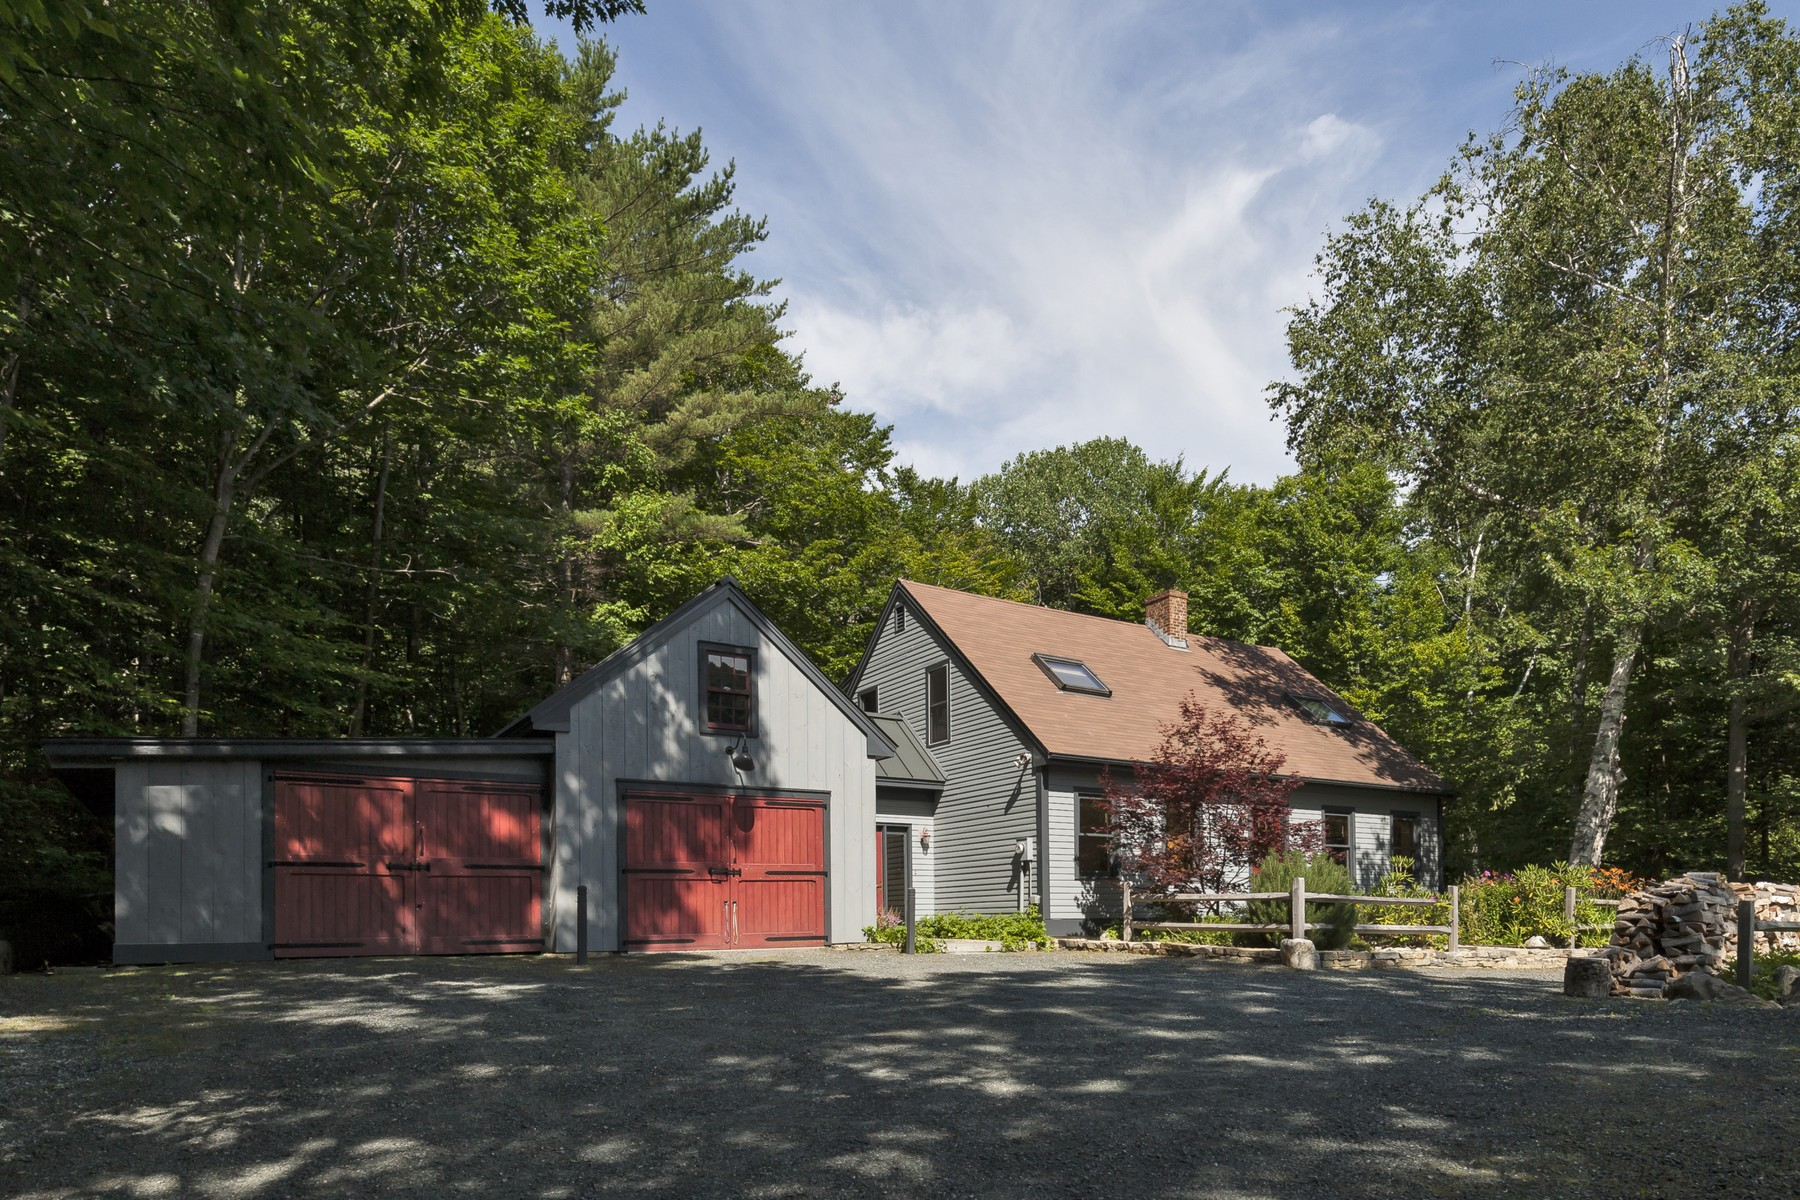 Single Family Home for Sale at 18 Canaan Ledge Lane, Lyme 18 Canaan Ledge Ln Lyme, New Hampshire, 03768 United States